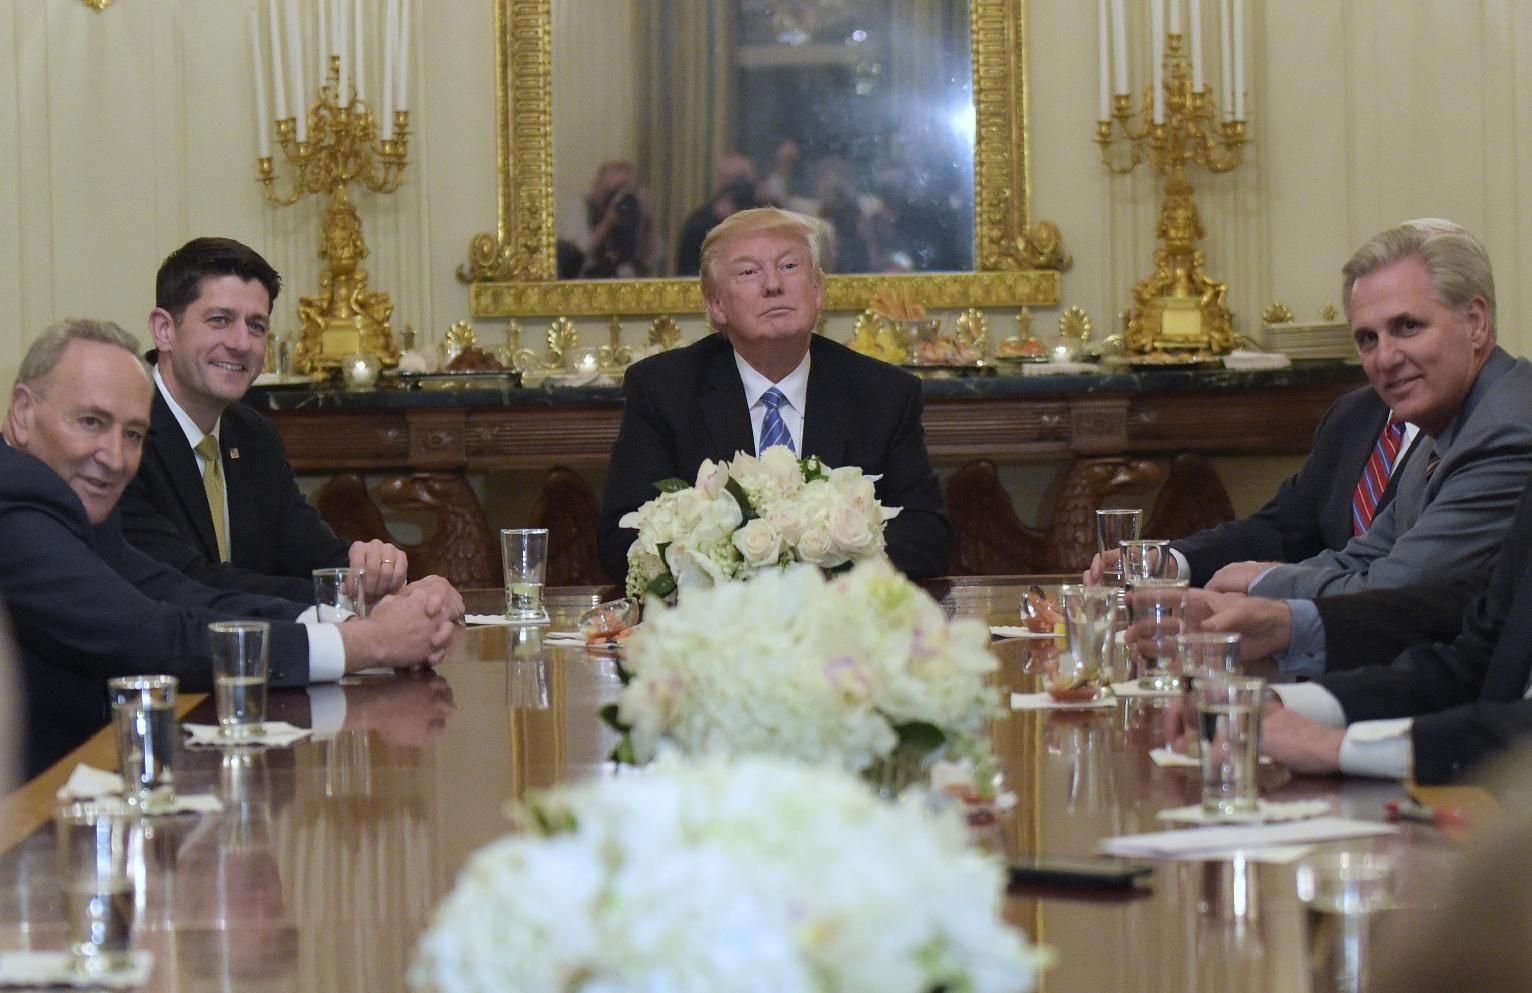 WASHINGTON (AP) — President Donald Trump asserted in a private meeting with congressional leaders Monday night that he would have won the popular vote in the 2016 election if 3 million to 5 million immigrants living in the country illegally hadn't voted.